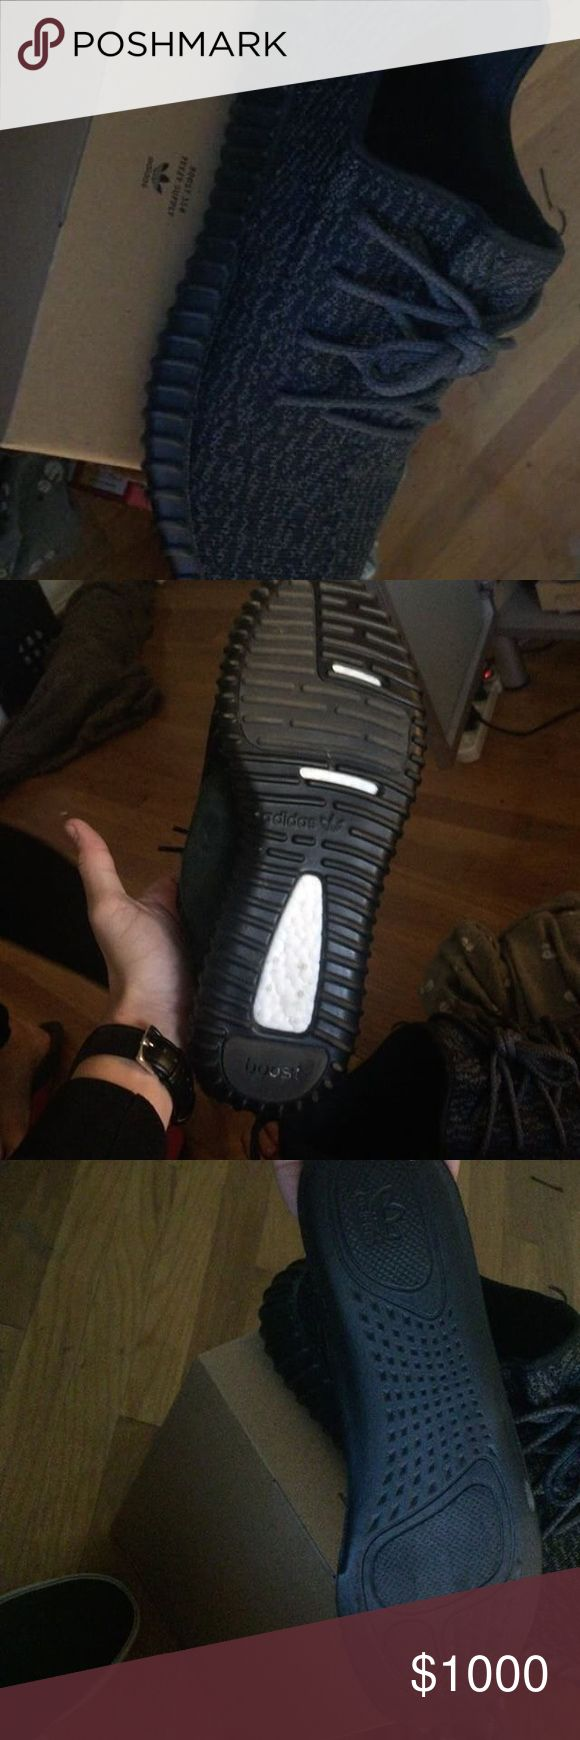 Yeezys Boost 350 Pirate Black Men Authentic -_- if you want pictures ask! - Got as a gift, not a big Yeezy fan got some use out of them tons of life 9/10 - They go for 1250$ on Flight Club - I'll take offers , no low balls Adidas Shoes Sneakers